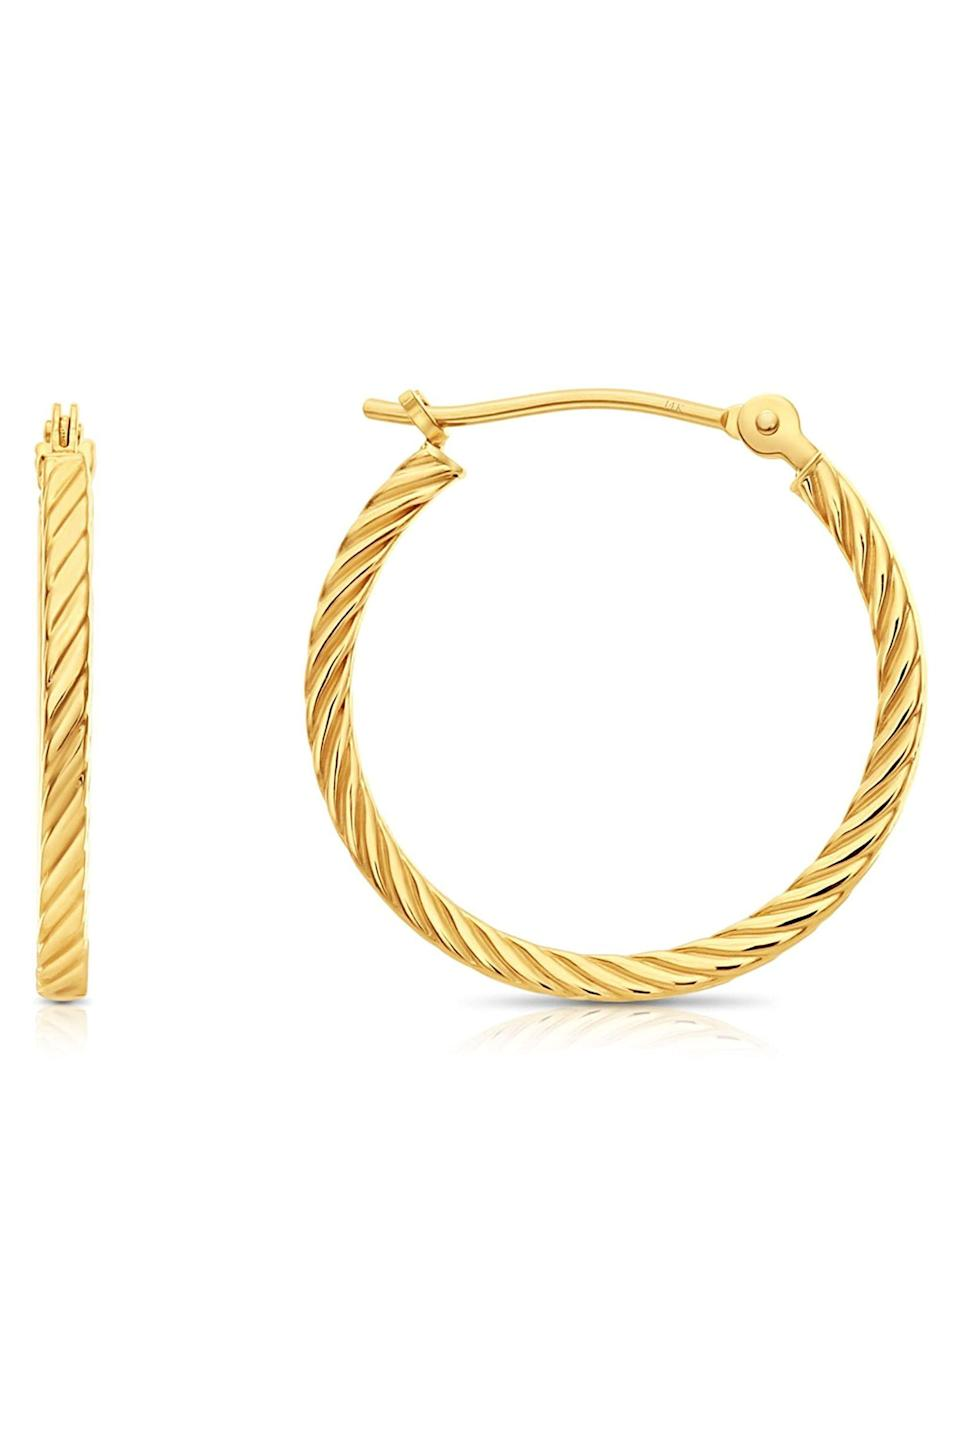 """<p><strong>Tilo Jewelry</strong></p><p>amazon.com</p><p><strong>$69.99</strong></p><p><a href=""""https://www.amazon.com/dp/B0821WQ9KF?tag=syn-yahoo-20&ascsubtag=%5Bartid%7C10063.g.34824549%5Bsrc%7Cyahoo-us"""" rel=""""nofollow noopener"""" target=""""_blank"""" data-ylk=""""slk:Shop Now"""" class=""""link rapid-noclick-resp"""">Shop Now</a></p><p>Gold hoops go with everything and somehow always feel cool wearing. Here, a 14k gold pair made in the US that won't slim down your holiday shopping budget. </p>"""